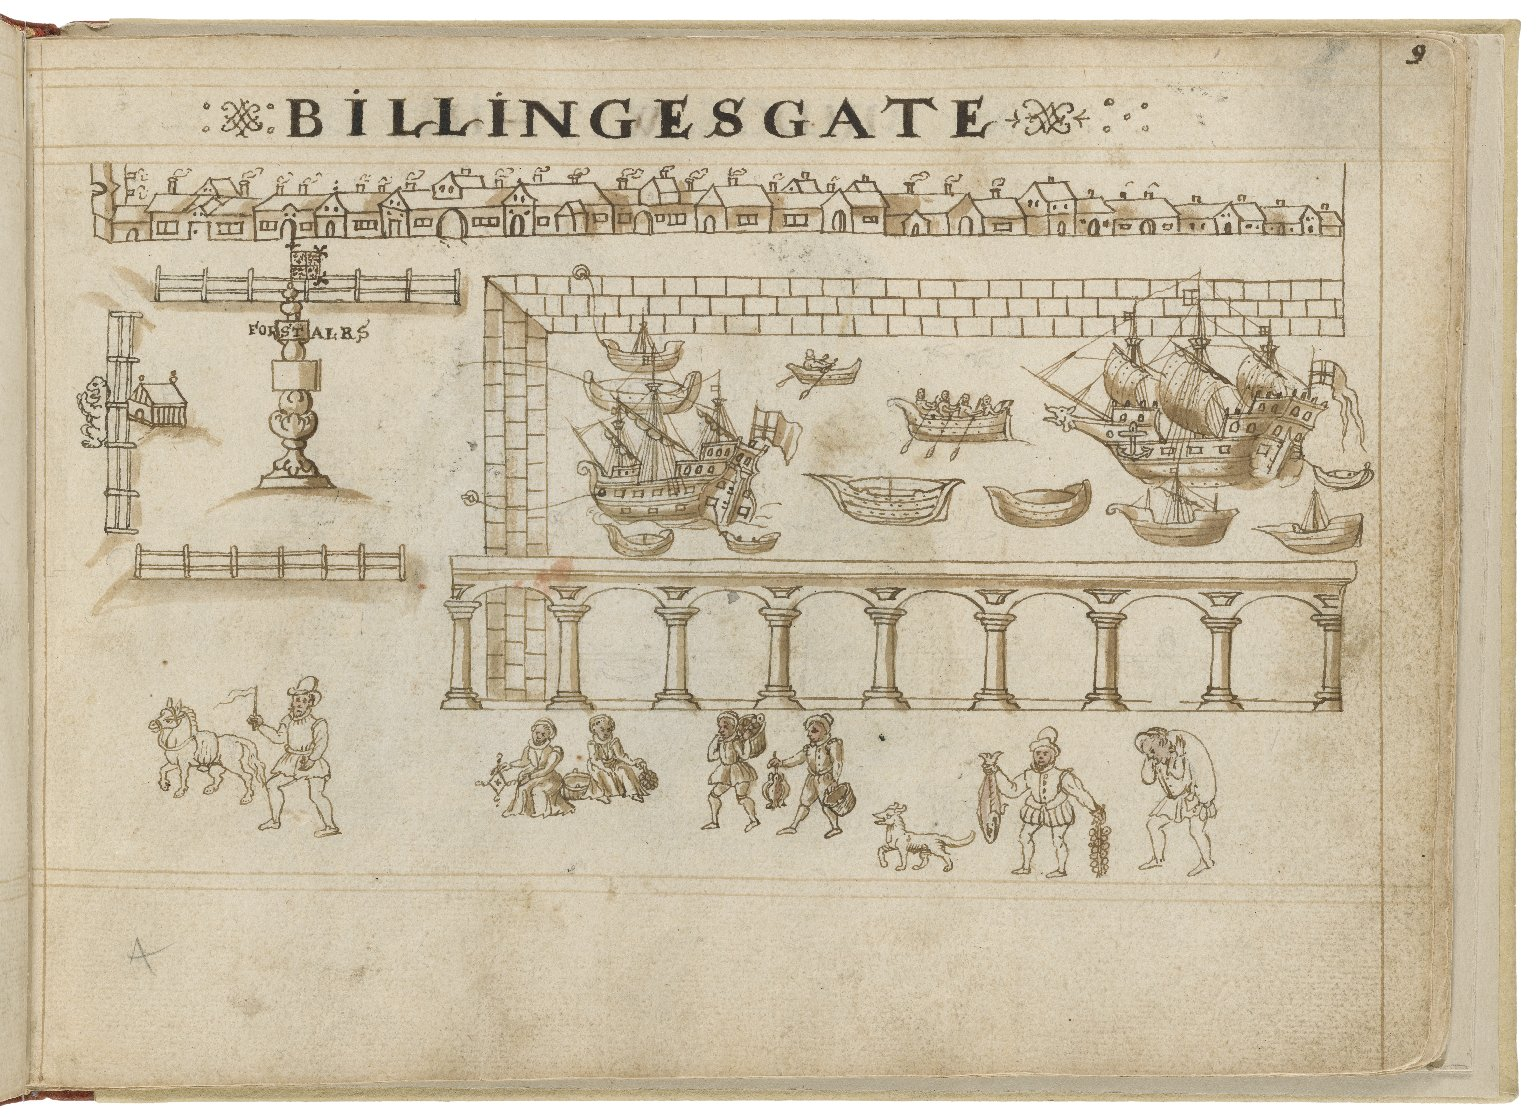 Drawing of Billingsgate by Hugh Alley. Image courtesy of the Folger Digital Image Collection.